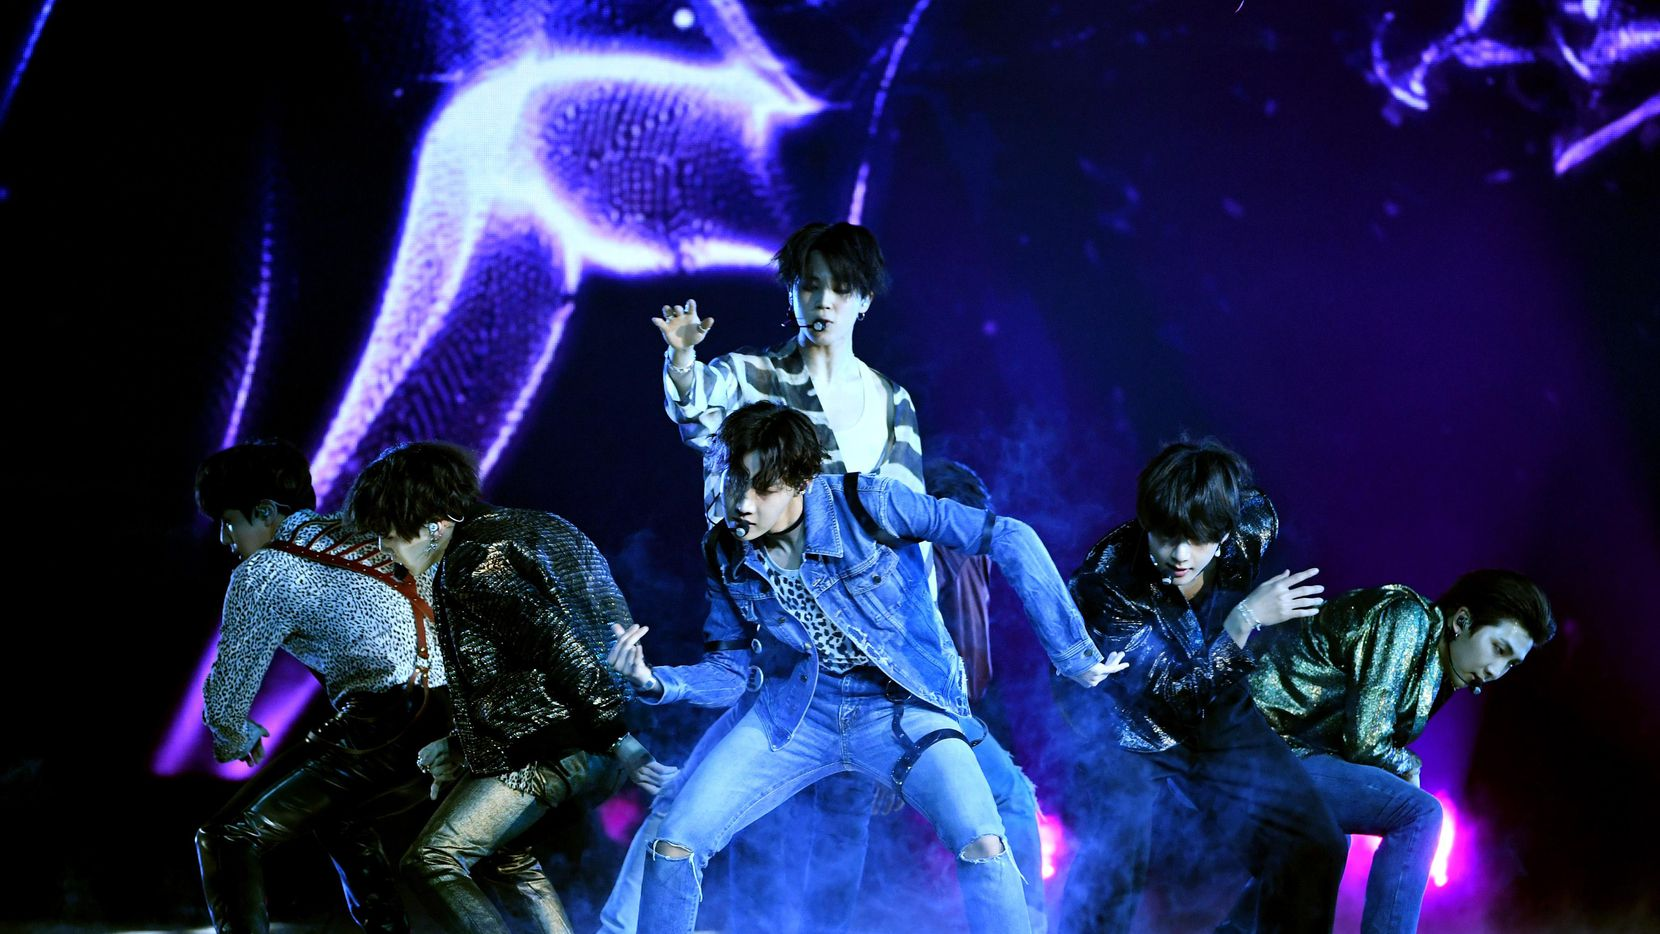 BTS performed at the Billboard Music Awards in 2018. (Getty Images/Kevin Winter)